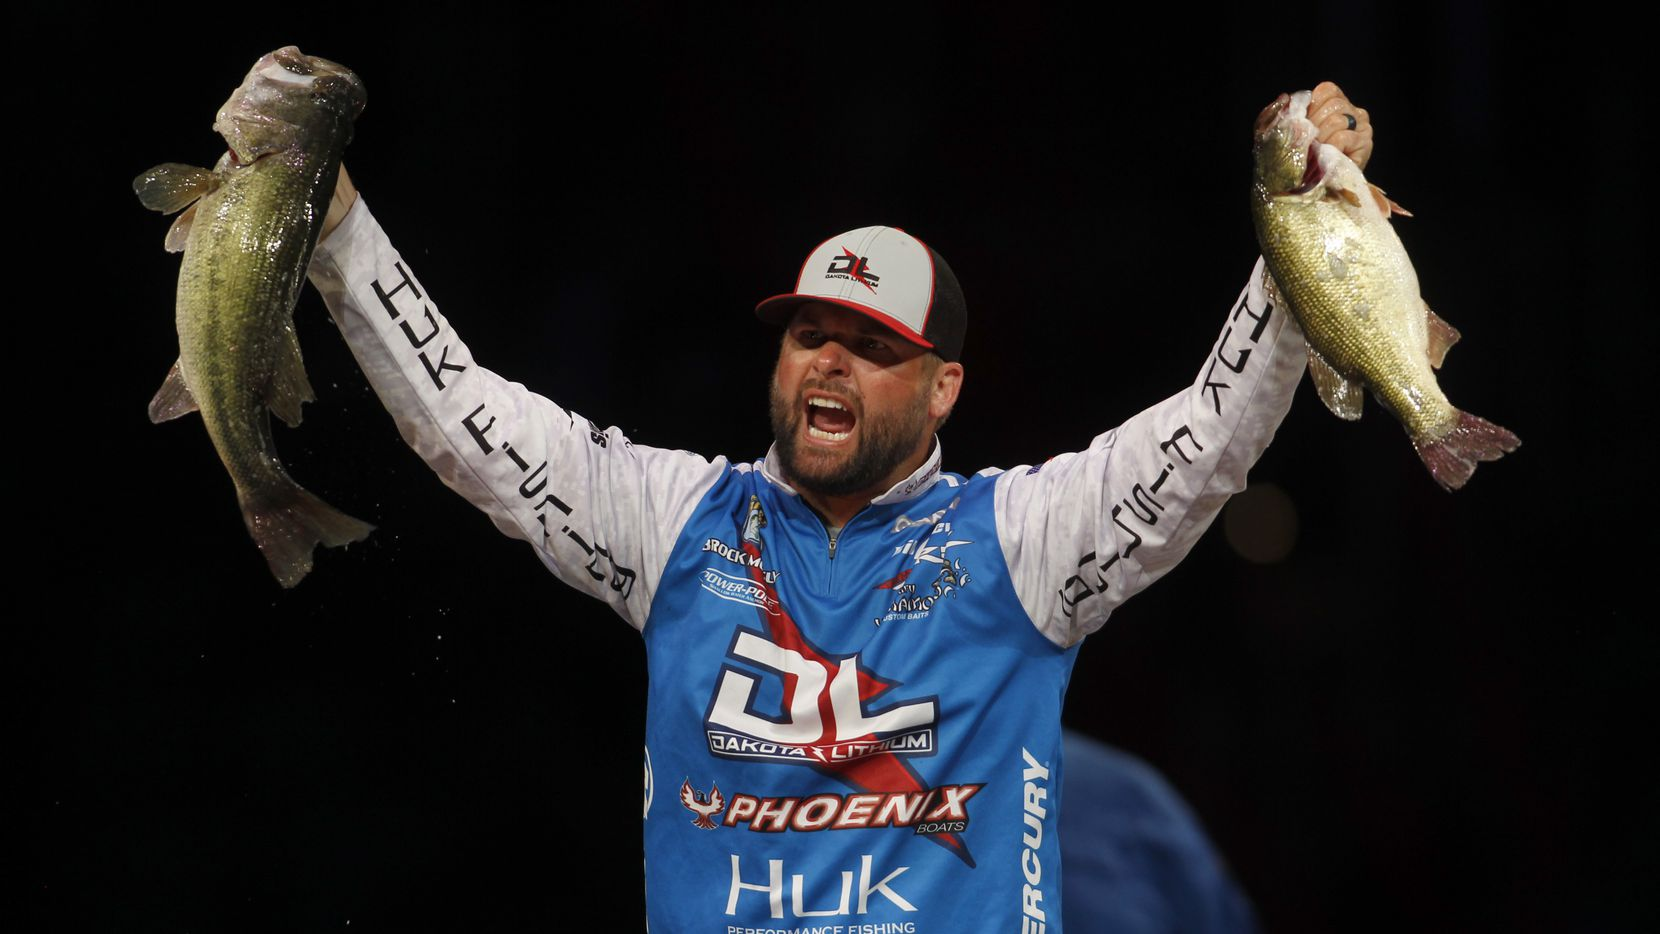 Brock Mosley lets out a yell while raising two of five fish he netted for a combined weight of 19 lbs.,1 ounce which topped all anglers on the final day of fishing. Mosley finished 5th in the tournament standing with a combined total weight of 42 pounds. The final weigh-in for the 51st Bassmaster Classic fishing tournament was held at Dickies Arena in Fort Worth on June 13, 2021.